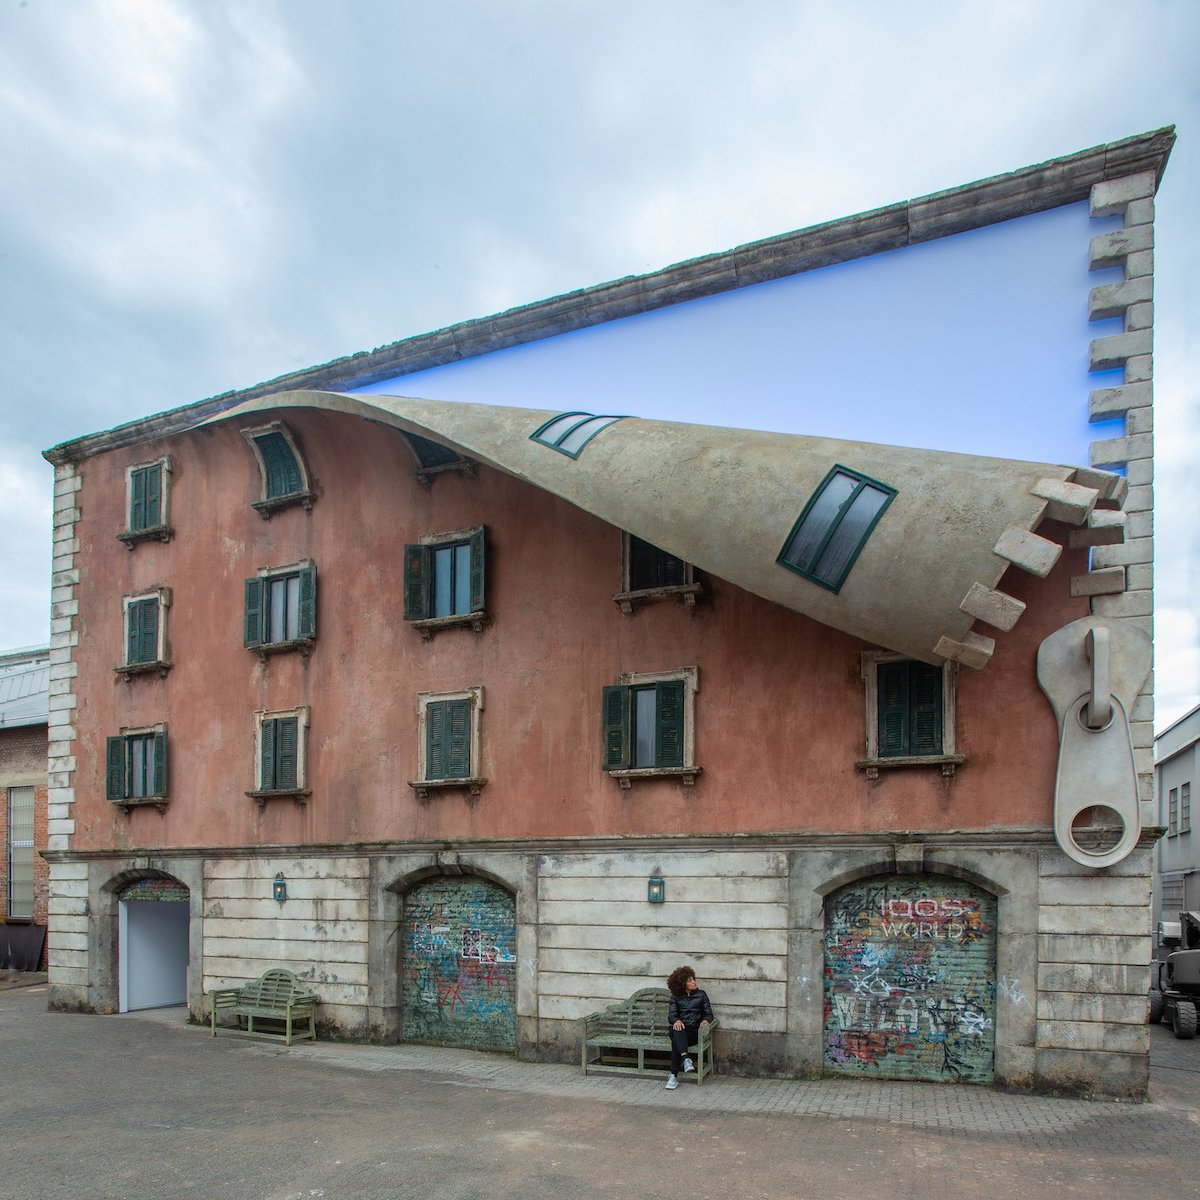 Sculptor 'Unzips' A Building In Milan With His Mind-Blowing Art Installation